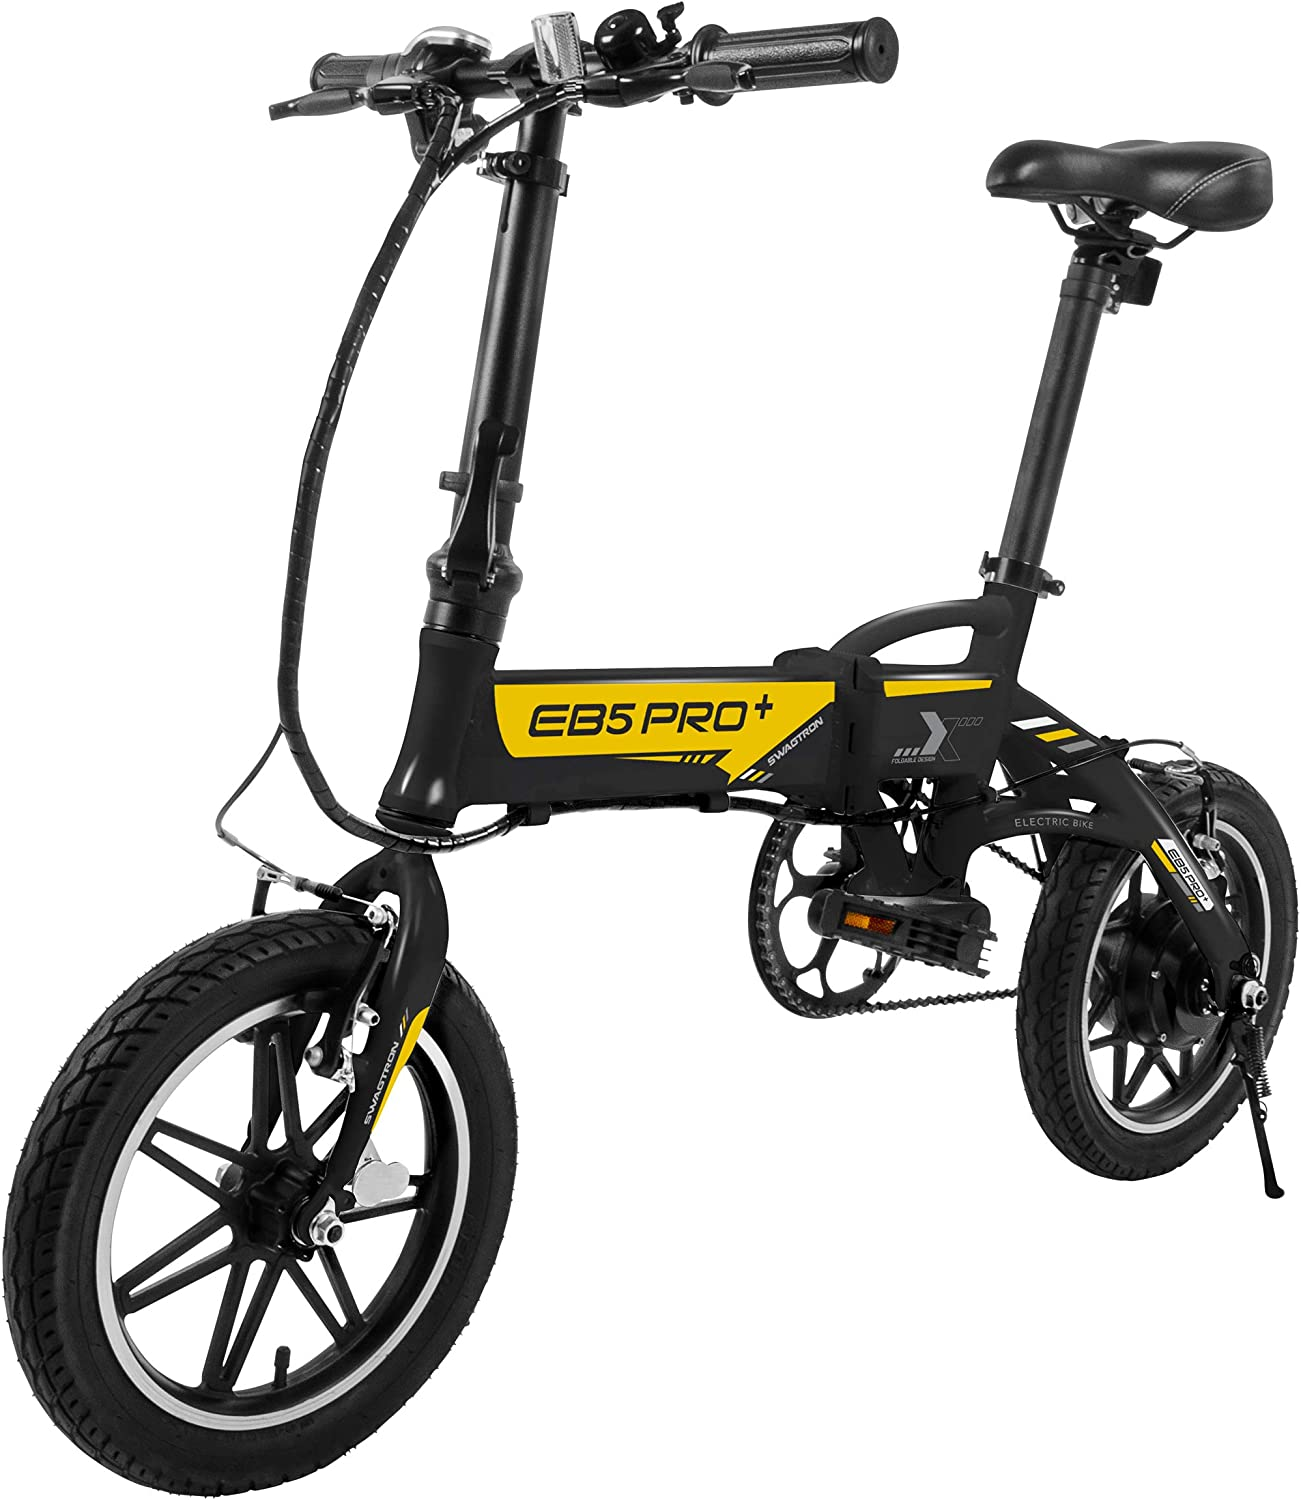 under $500 foldable electric bike